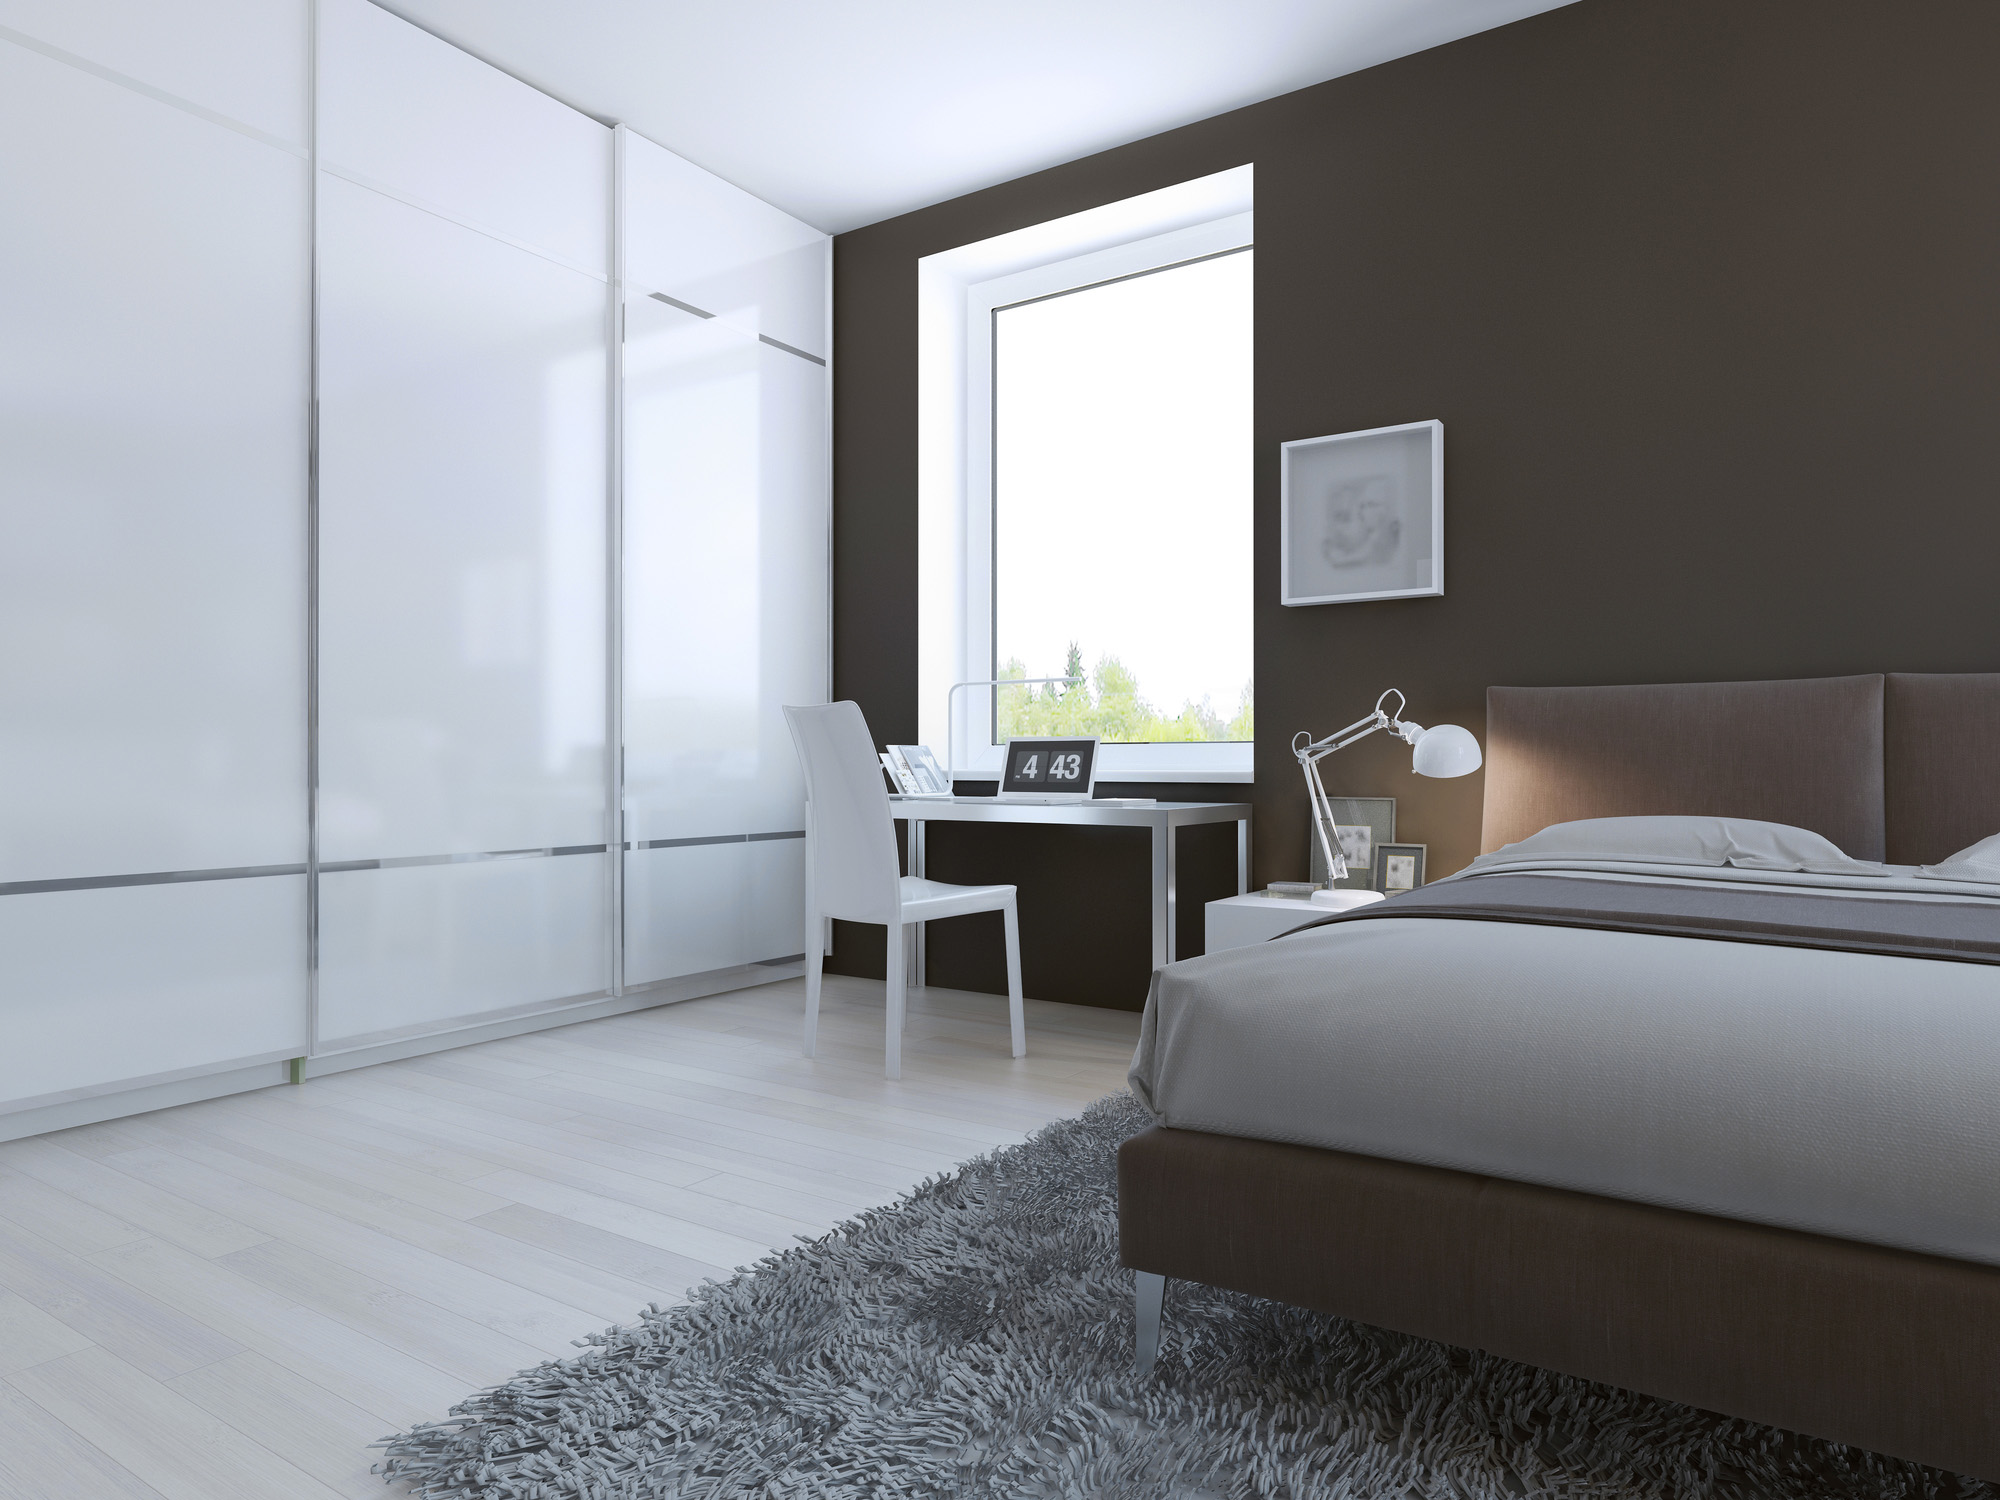 sliding wardrobes, white wardrobes, fitted wardrobes